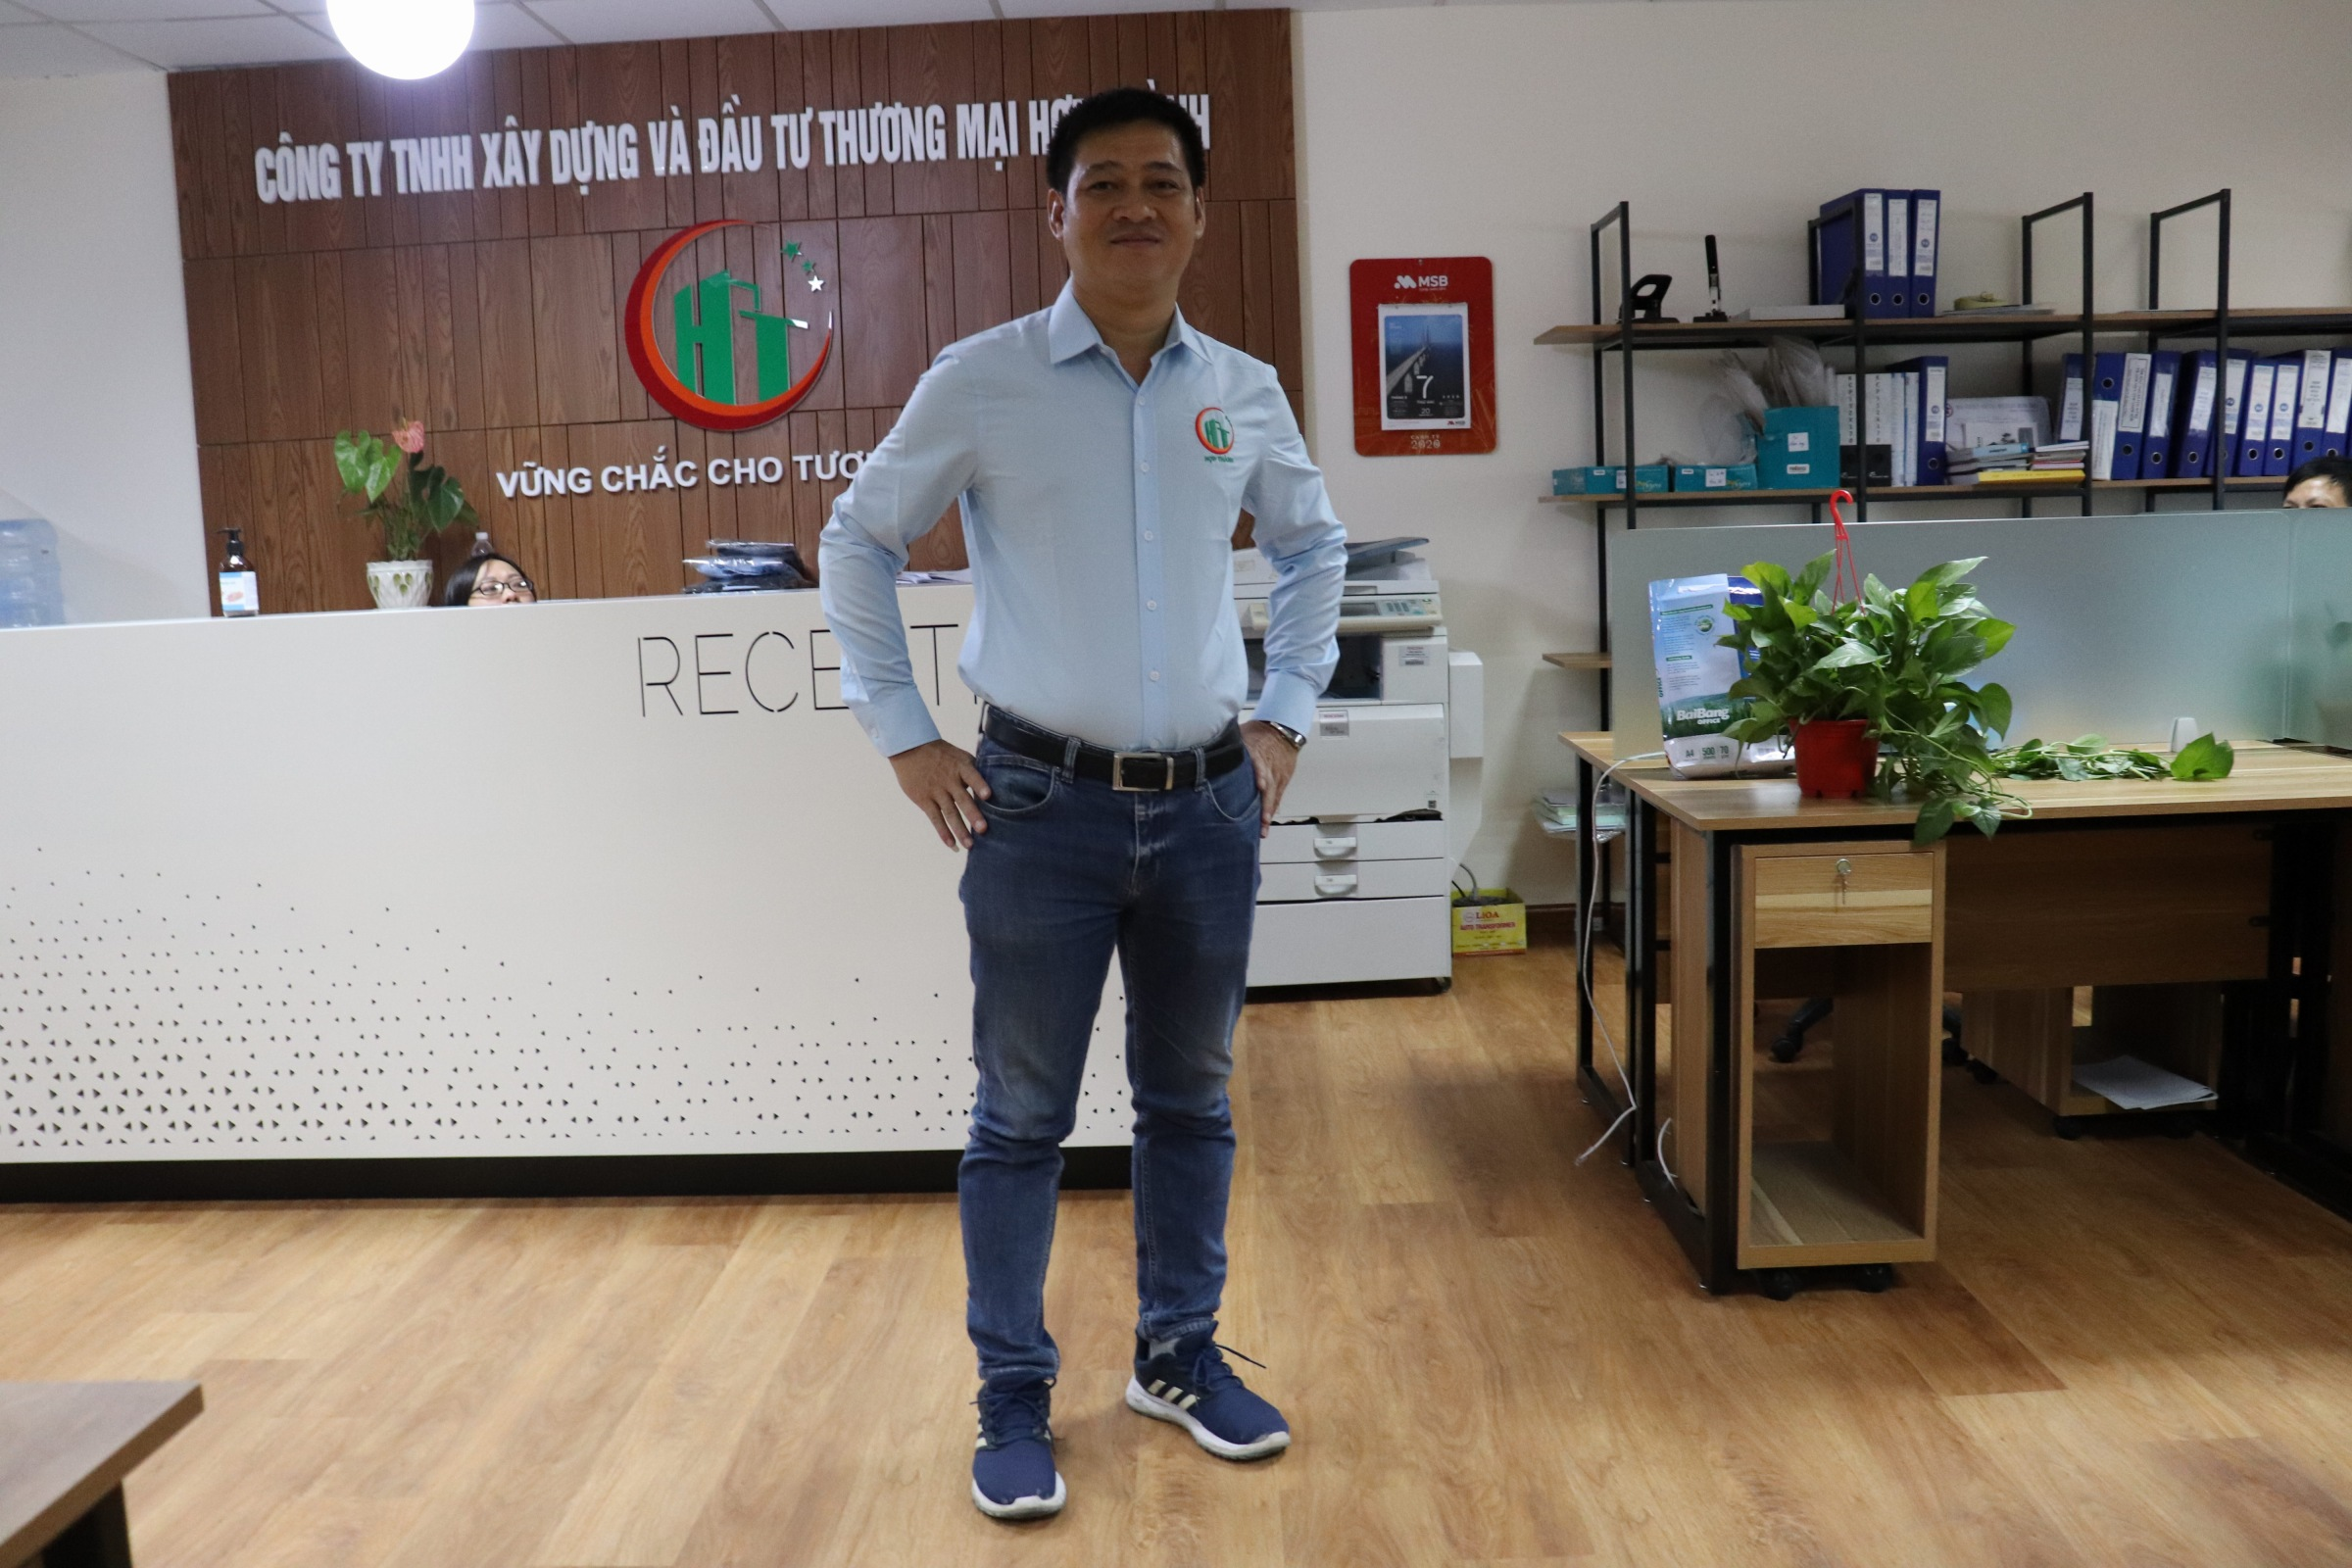 Hop Thanh officially implement the rule wearing uniform